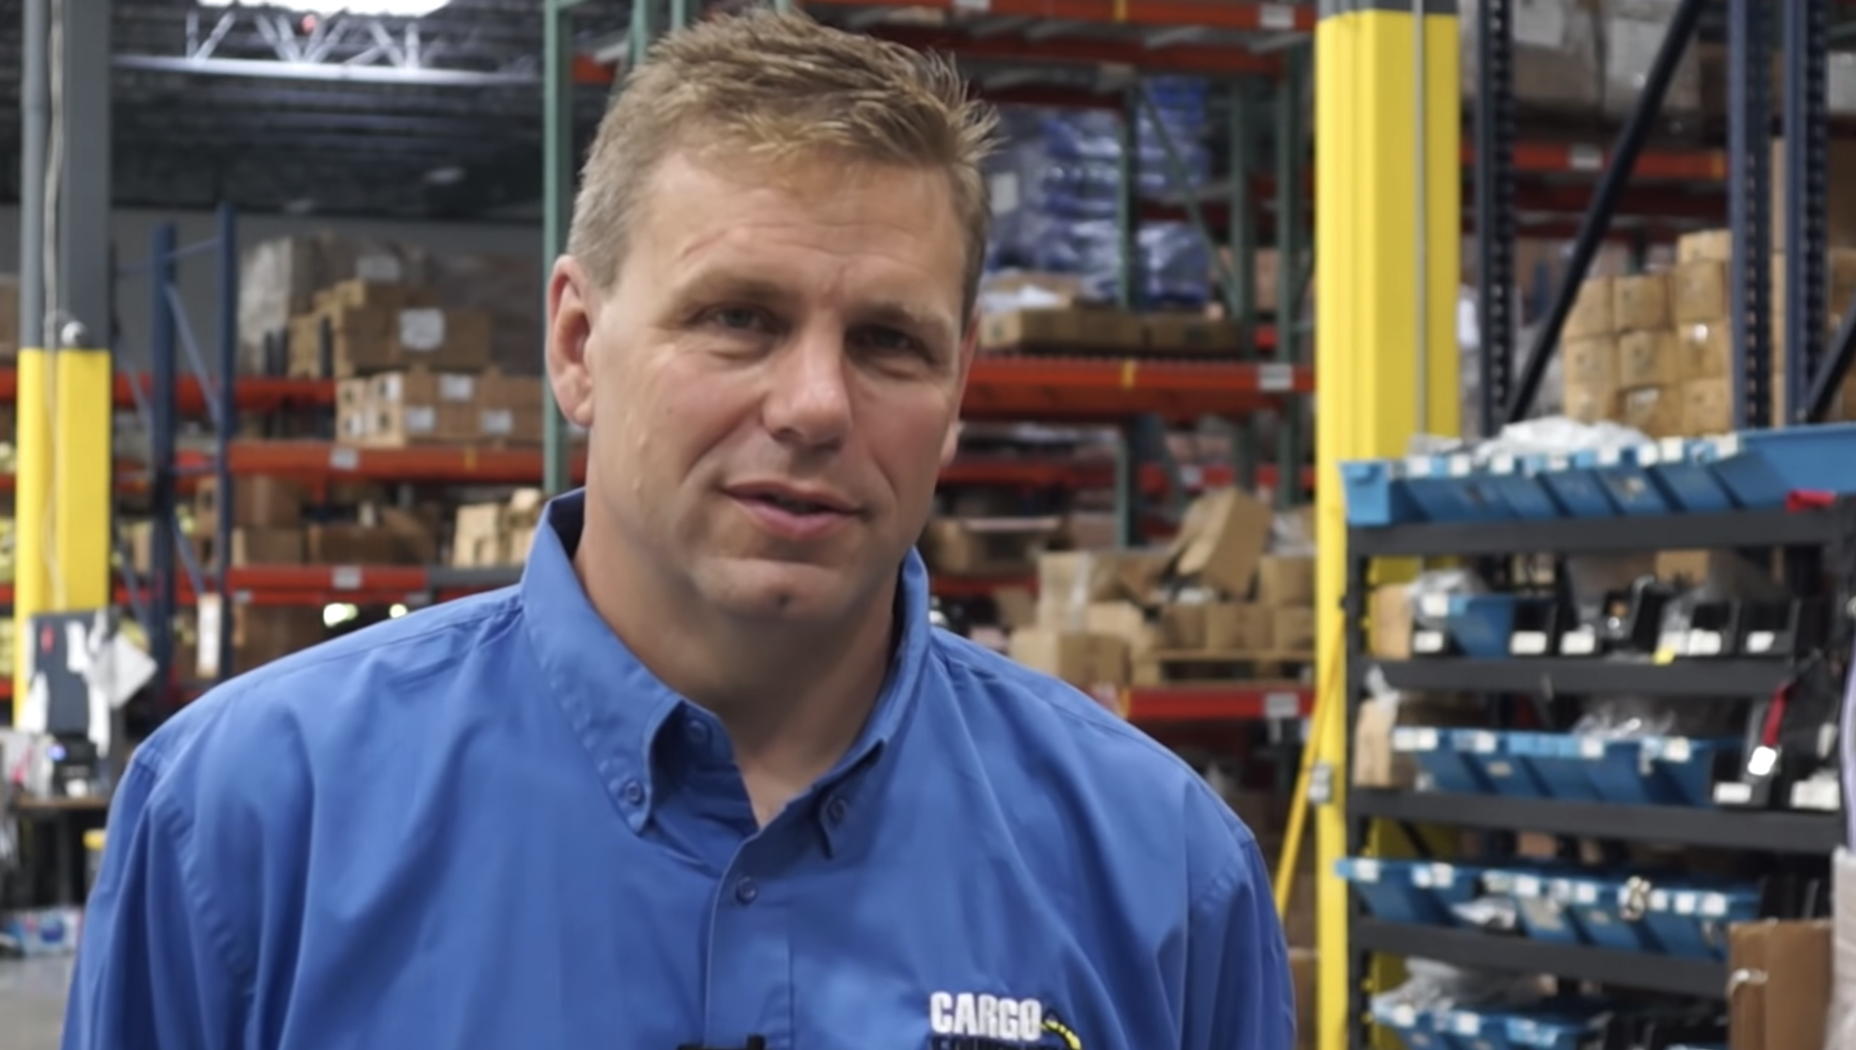 Cargo Equipment Explains Why They Switched to Celigo for NetSuite Ecommerce Integrations